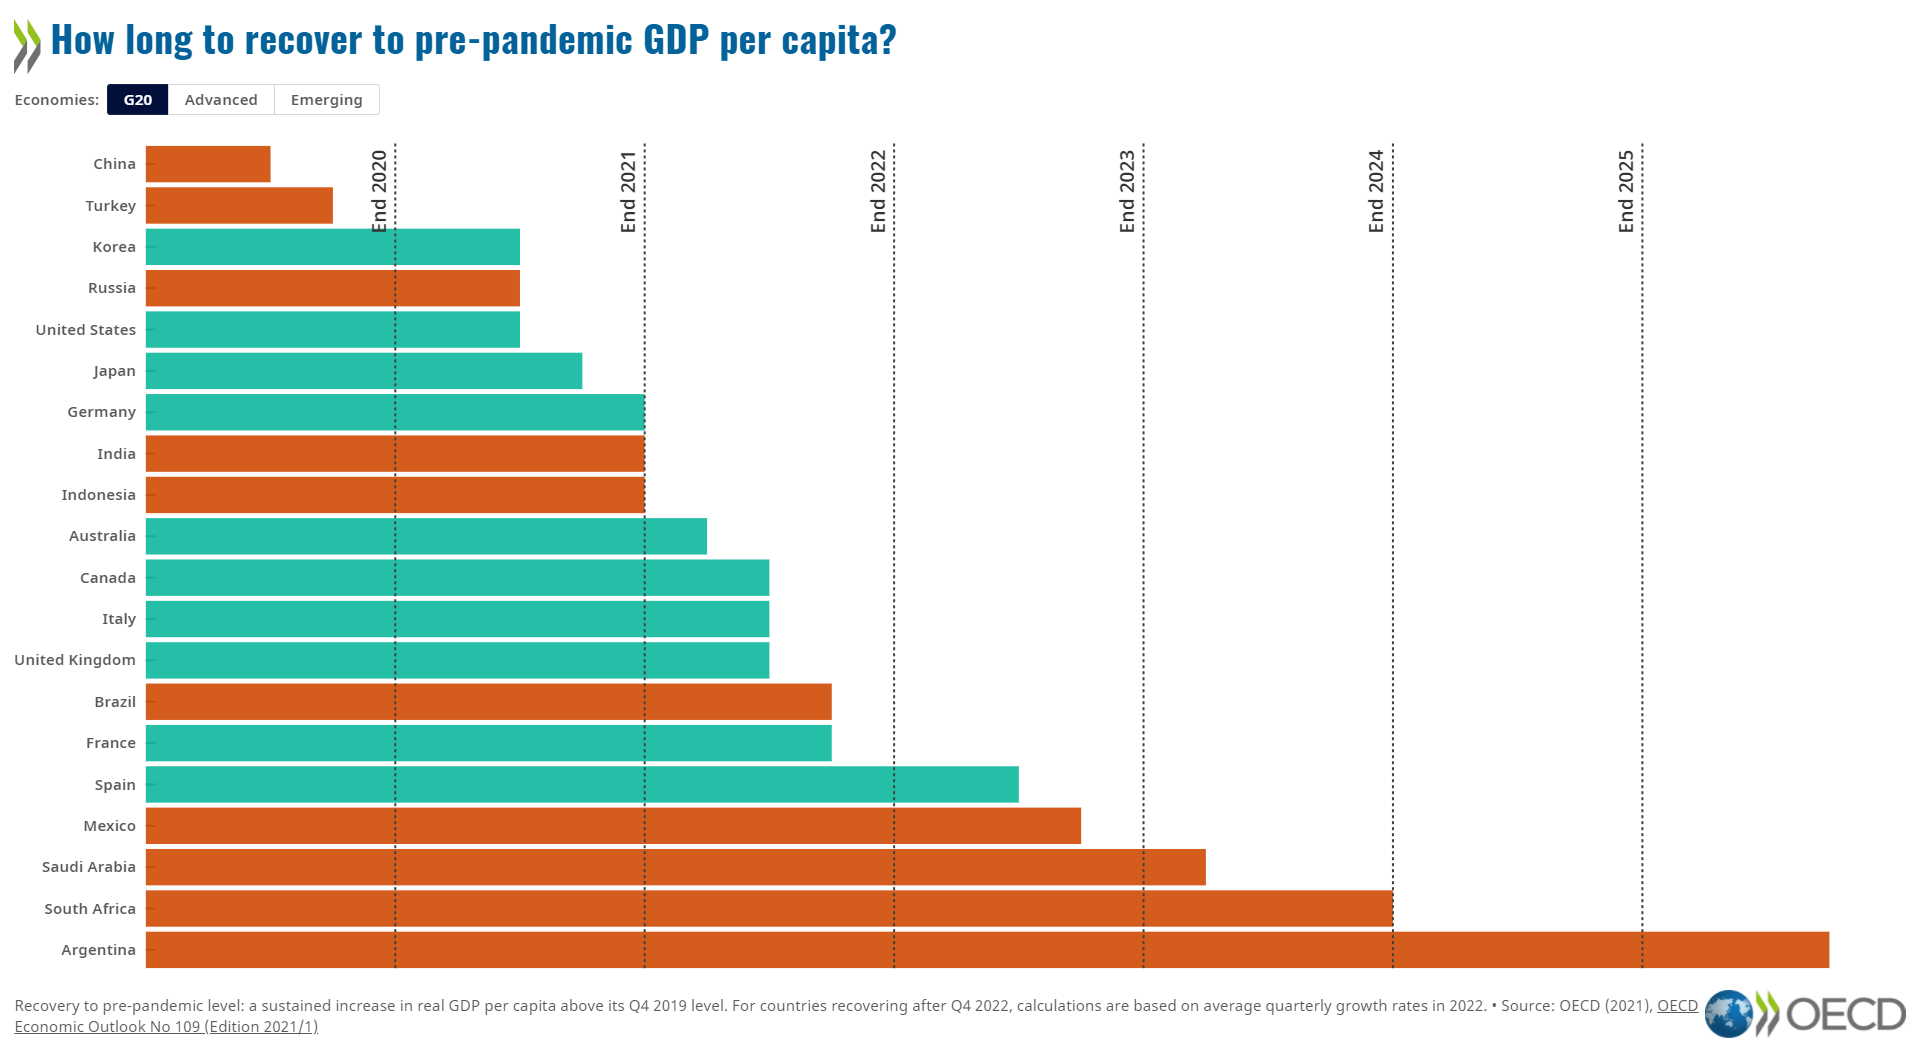 Global prospects are improving but performance diverges strongly across countries